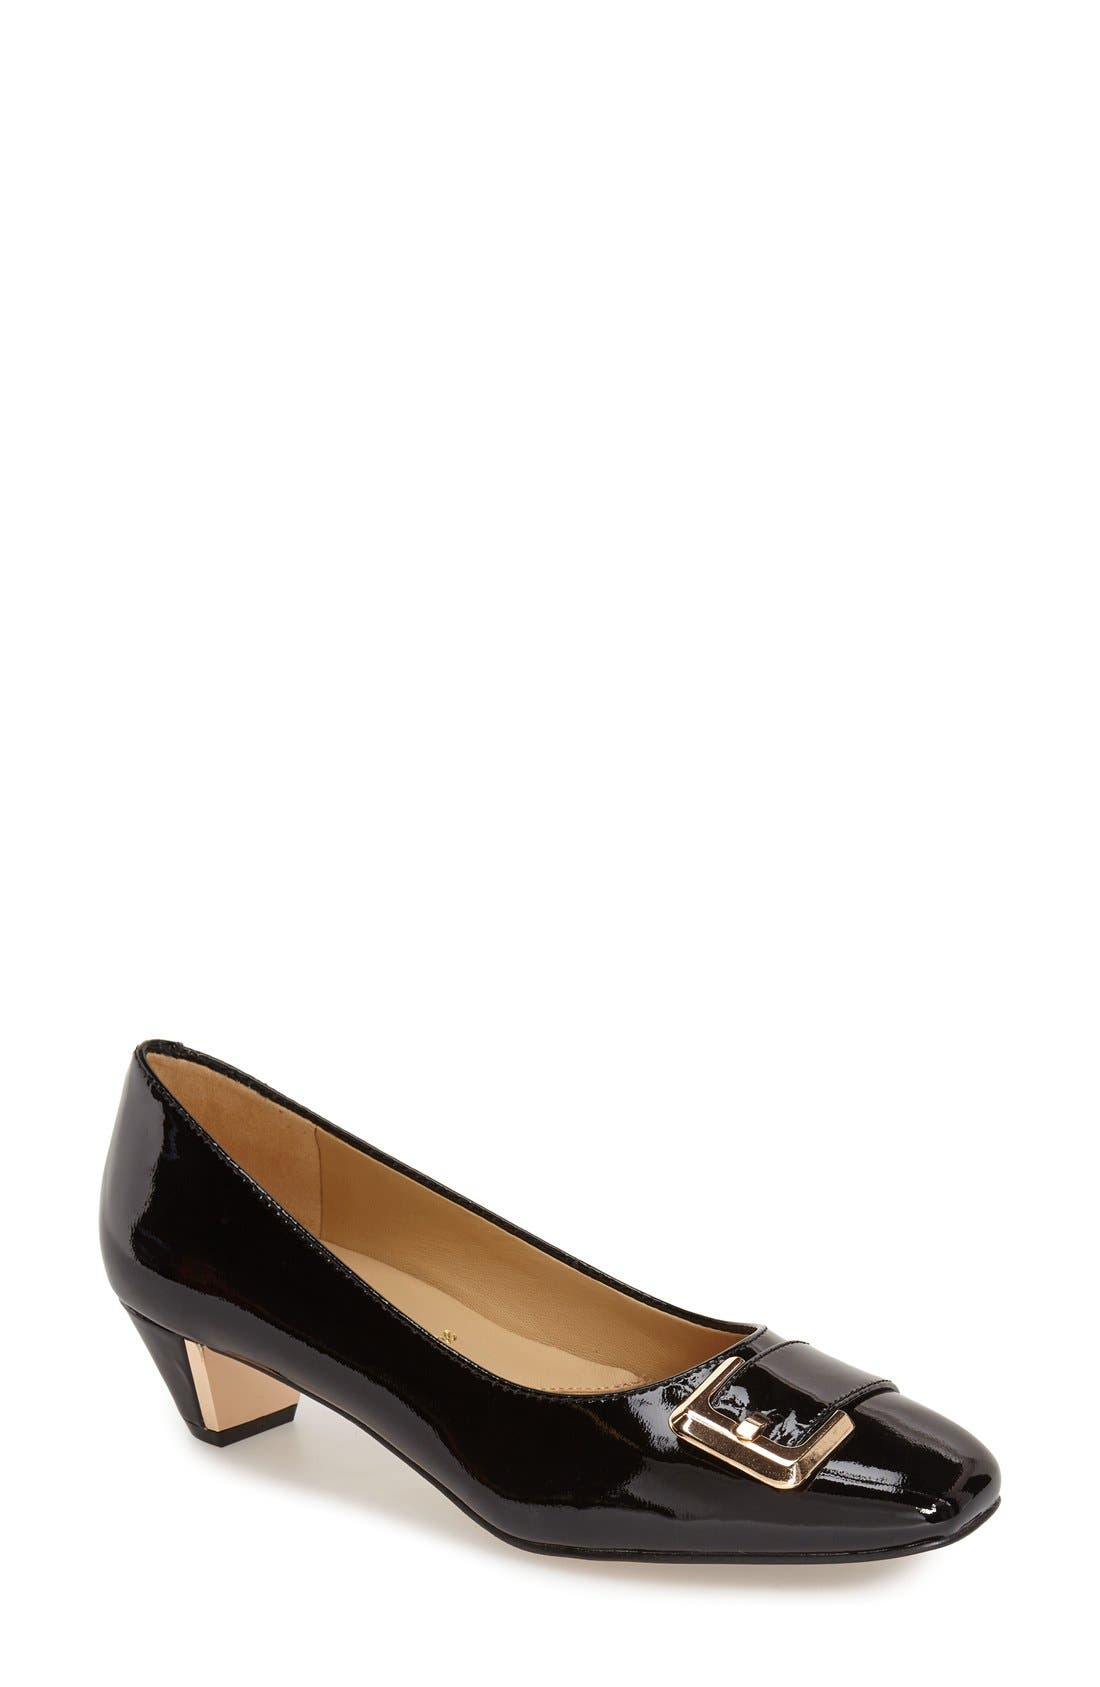 Alternate Image 1 Selected - Trotters 'Fancy' Pump (Women)